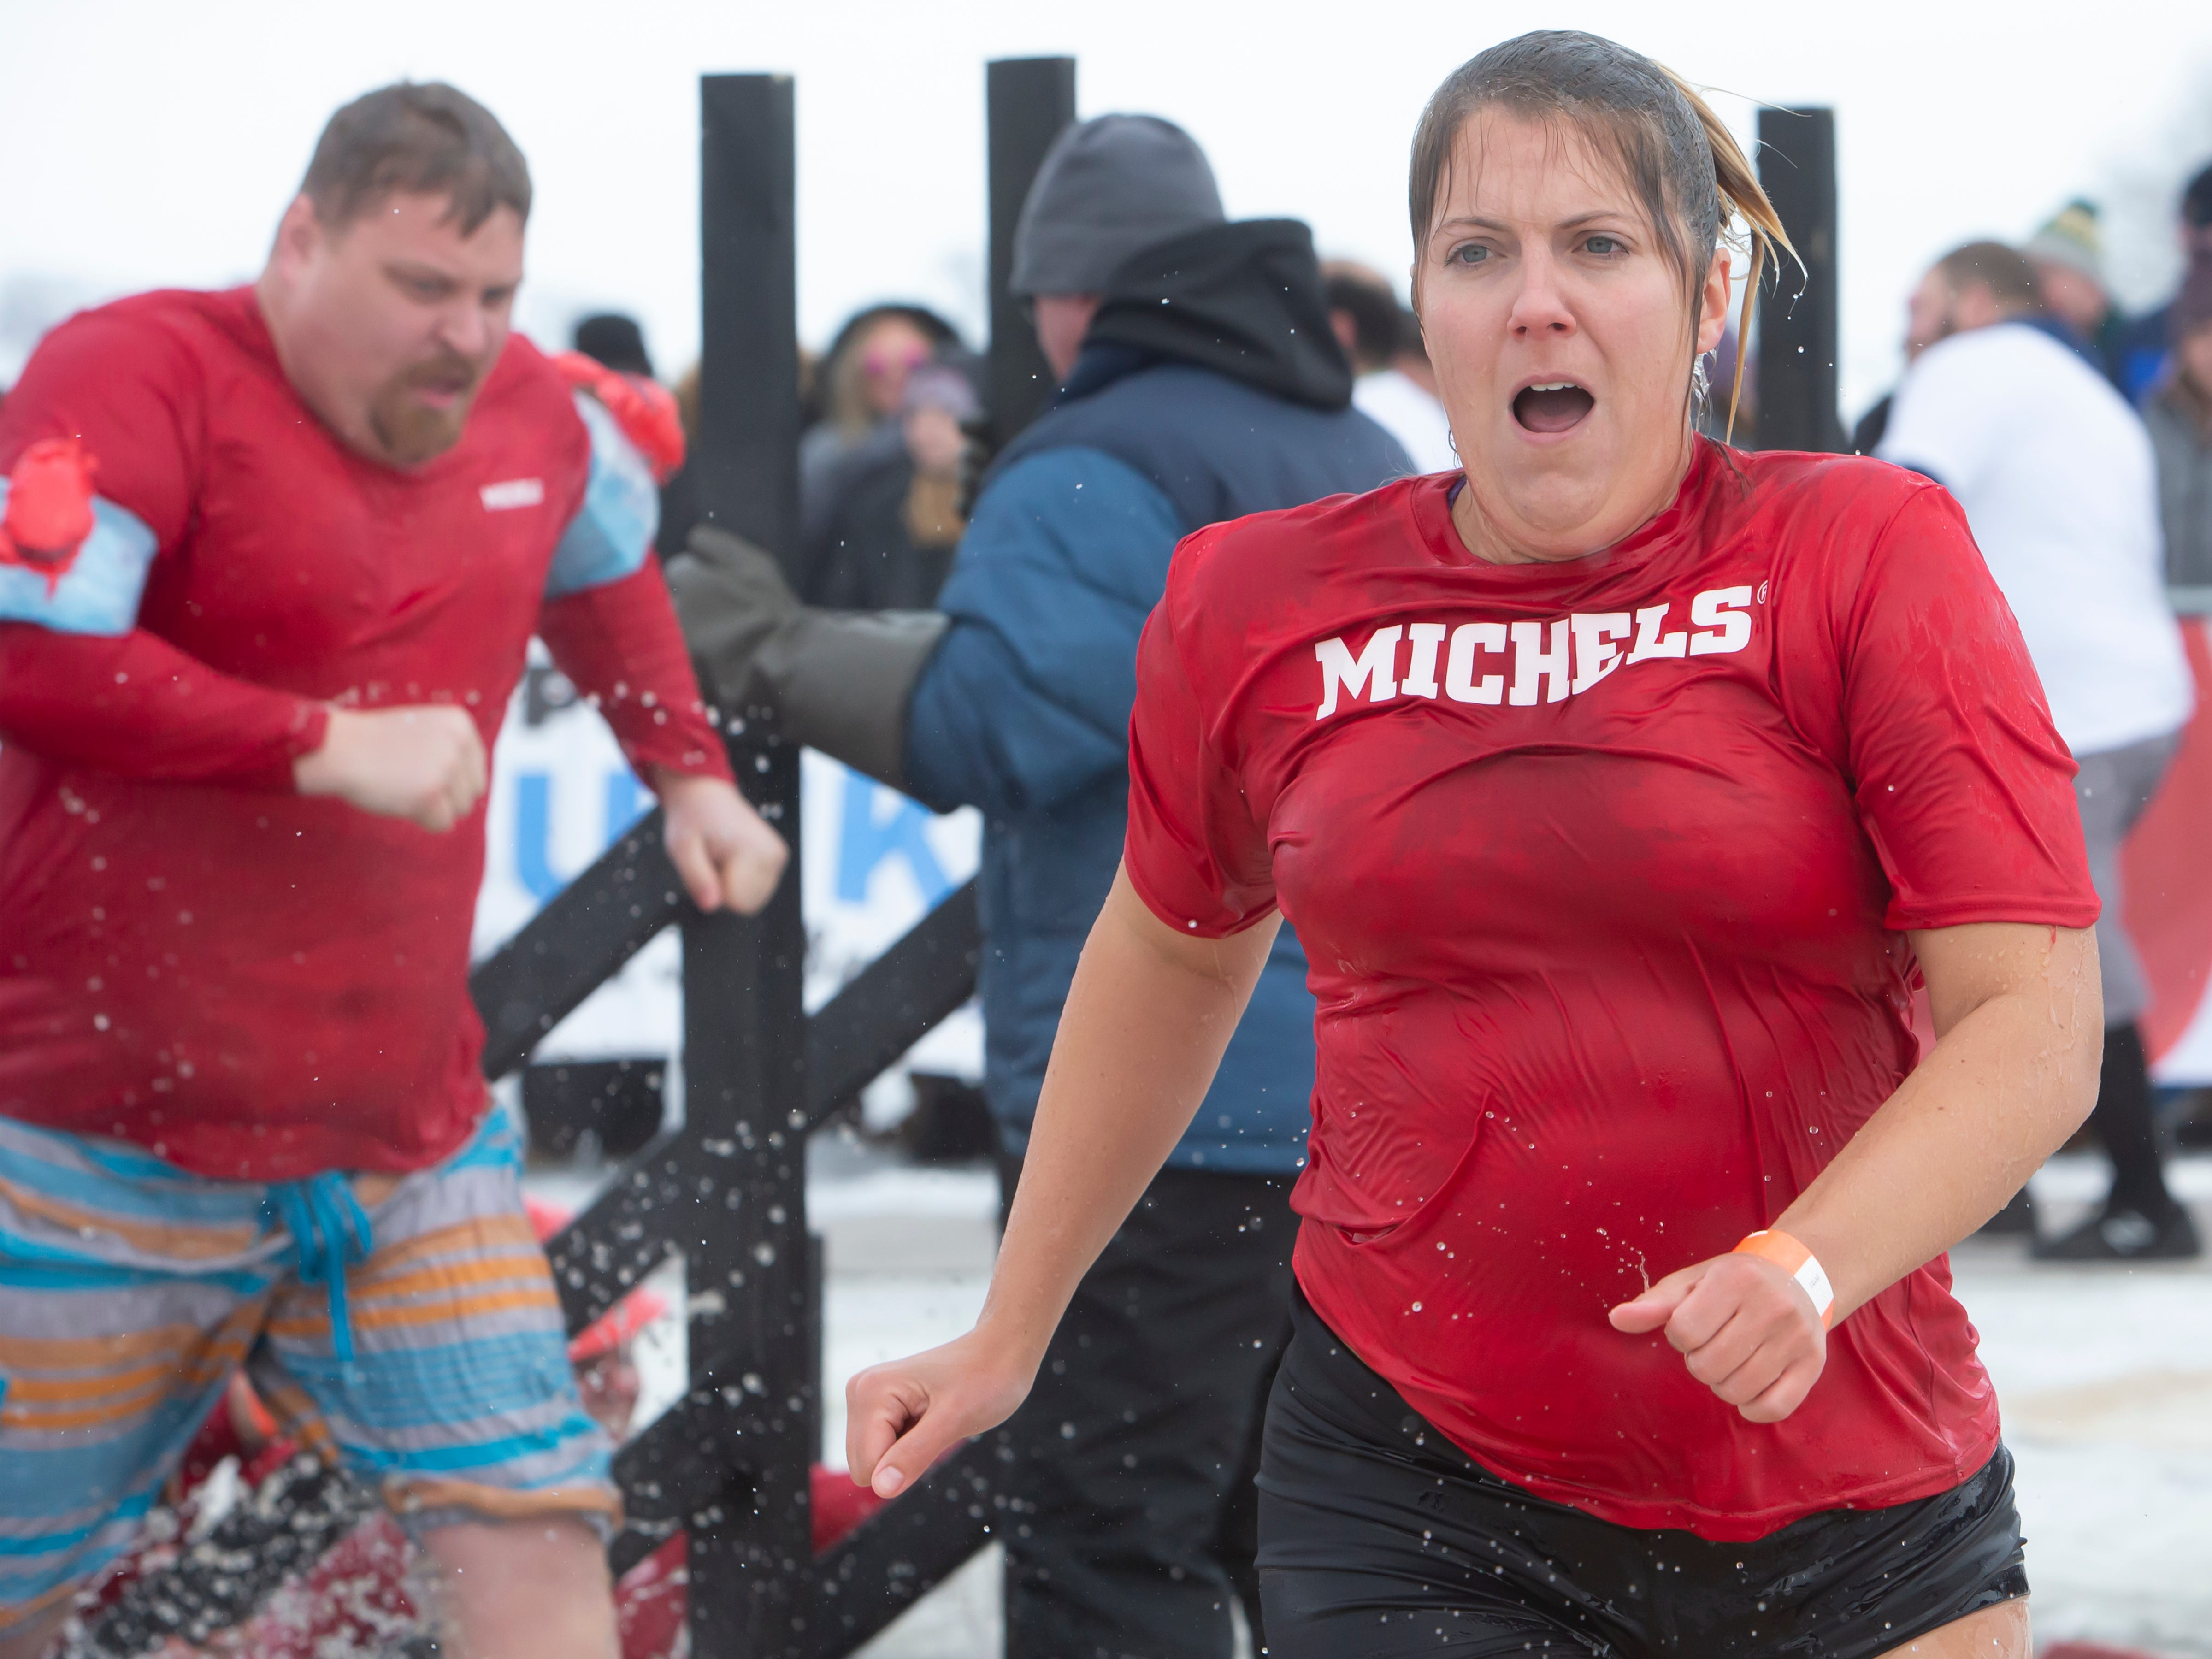 Michel's employee reacts after taking the plunge during the Special Olympics Wisconsin Polar Plunge in Oshkosh, Wis., on Saturday, February 16, 2019, at Miller's Bay in Menominee Park.